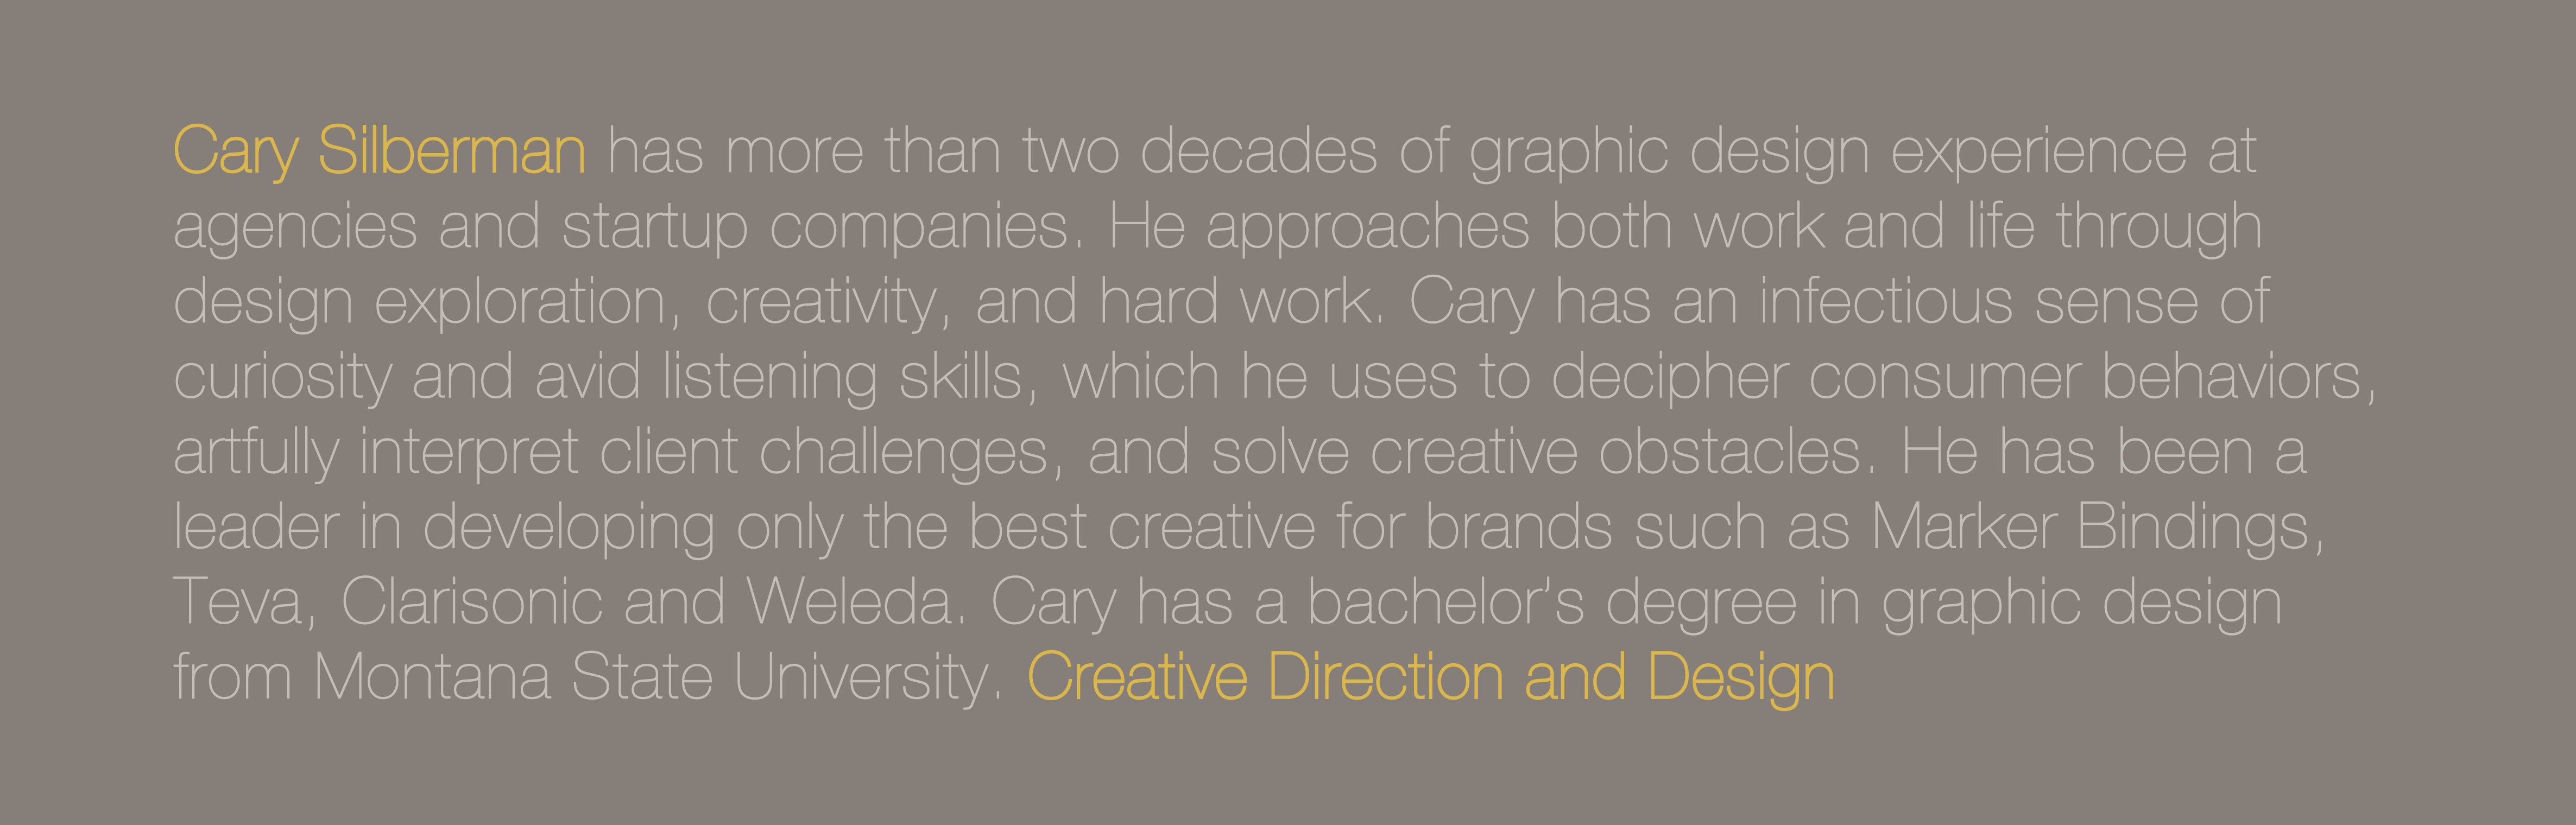 Cary Silberman has more than two decades of graphic design experience at agencies and startup companies. He approaches both work and life through design exploration, creativity, and hard work. Cary has an infectious sense of curiosity and avid listening skills, which he uses to decipher consumer behaviors, artfully interpret client challenges, and solve creative obstacles. He has been a leader in developing only the best creative for brands such as Marker Bindings, Teva, Clarisonic and Weleda. Cary has a bachelor's degree in graphic design from Montana State University. Creative Direction